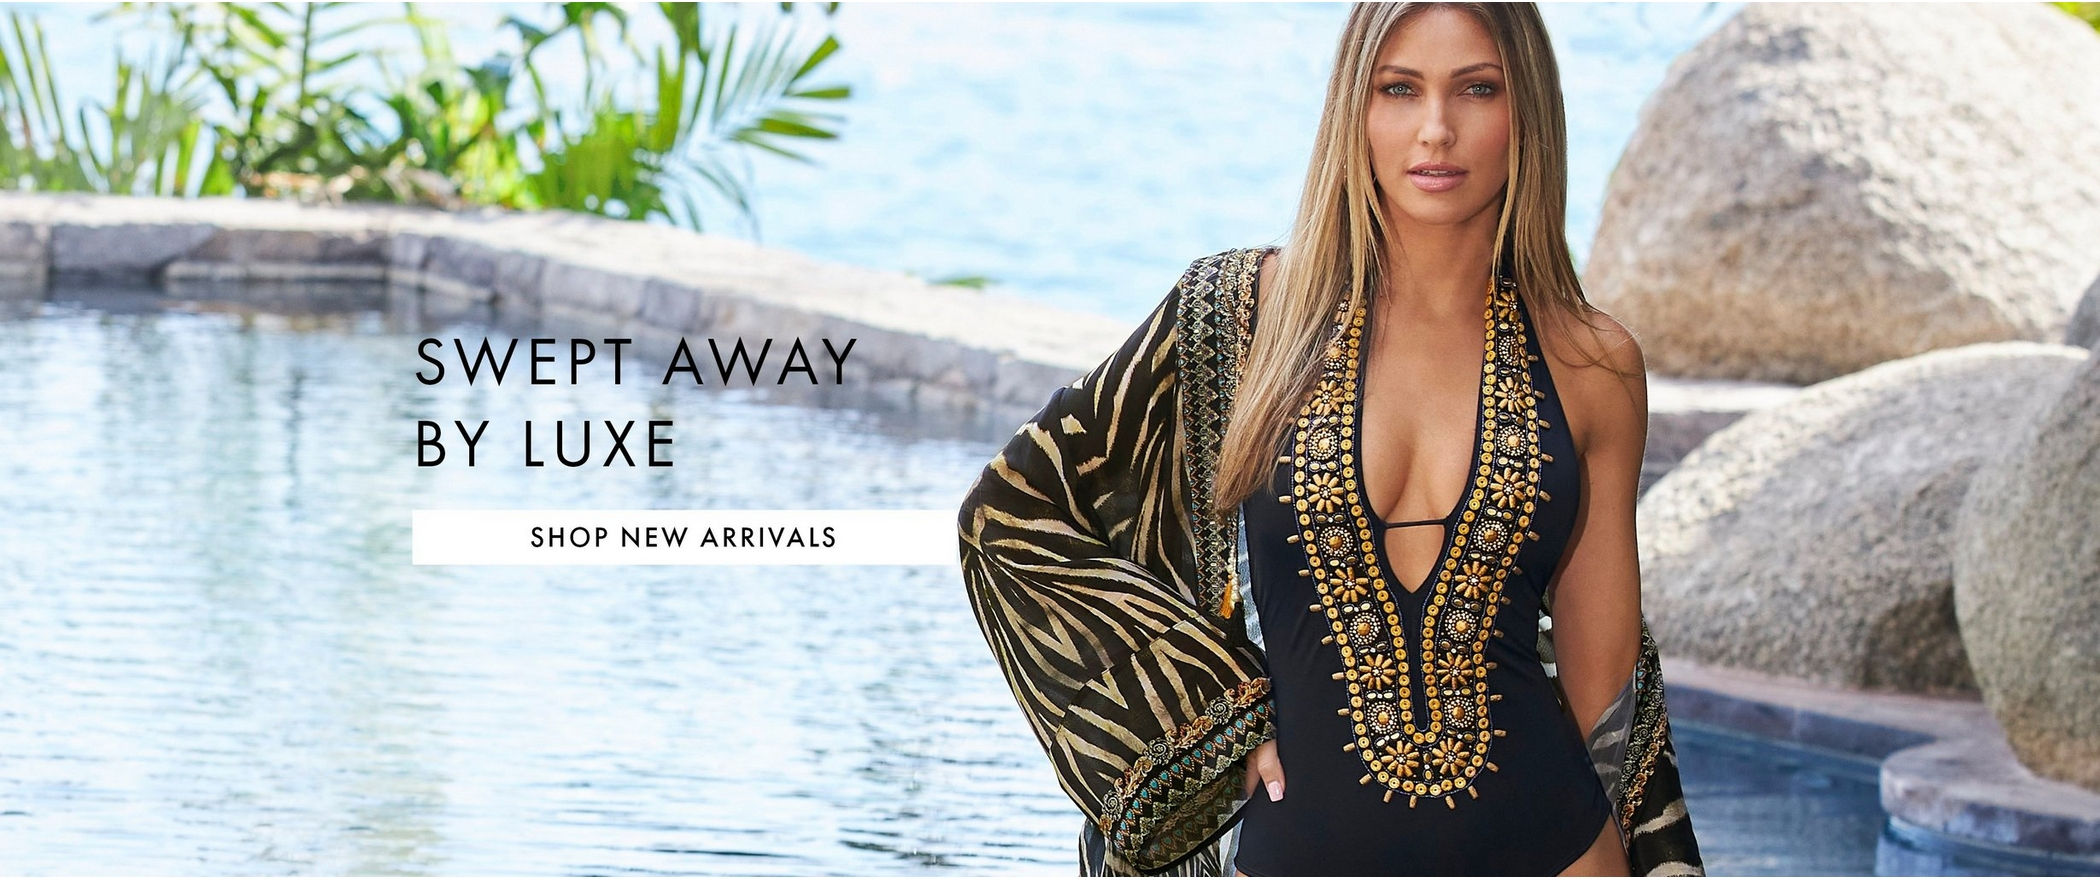 model wearing a black and gold embellished one-piece swimsuit and an embellished animal print duster cover-up.